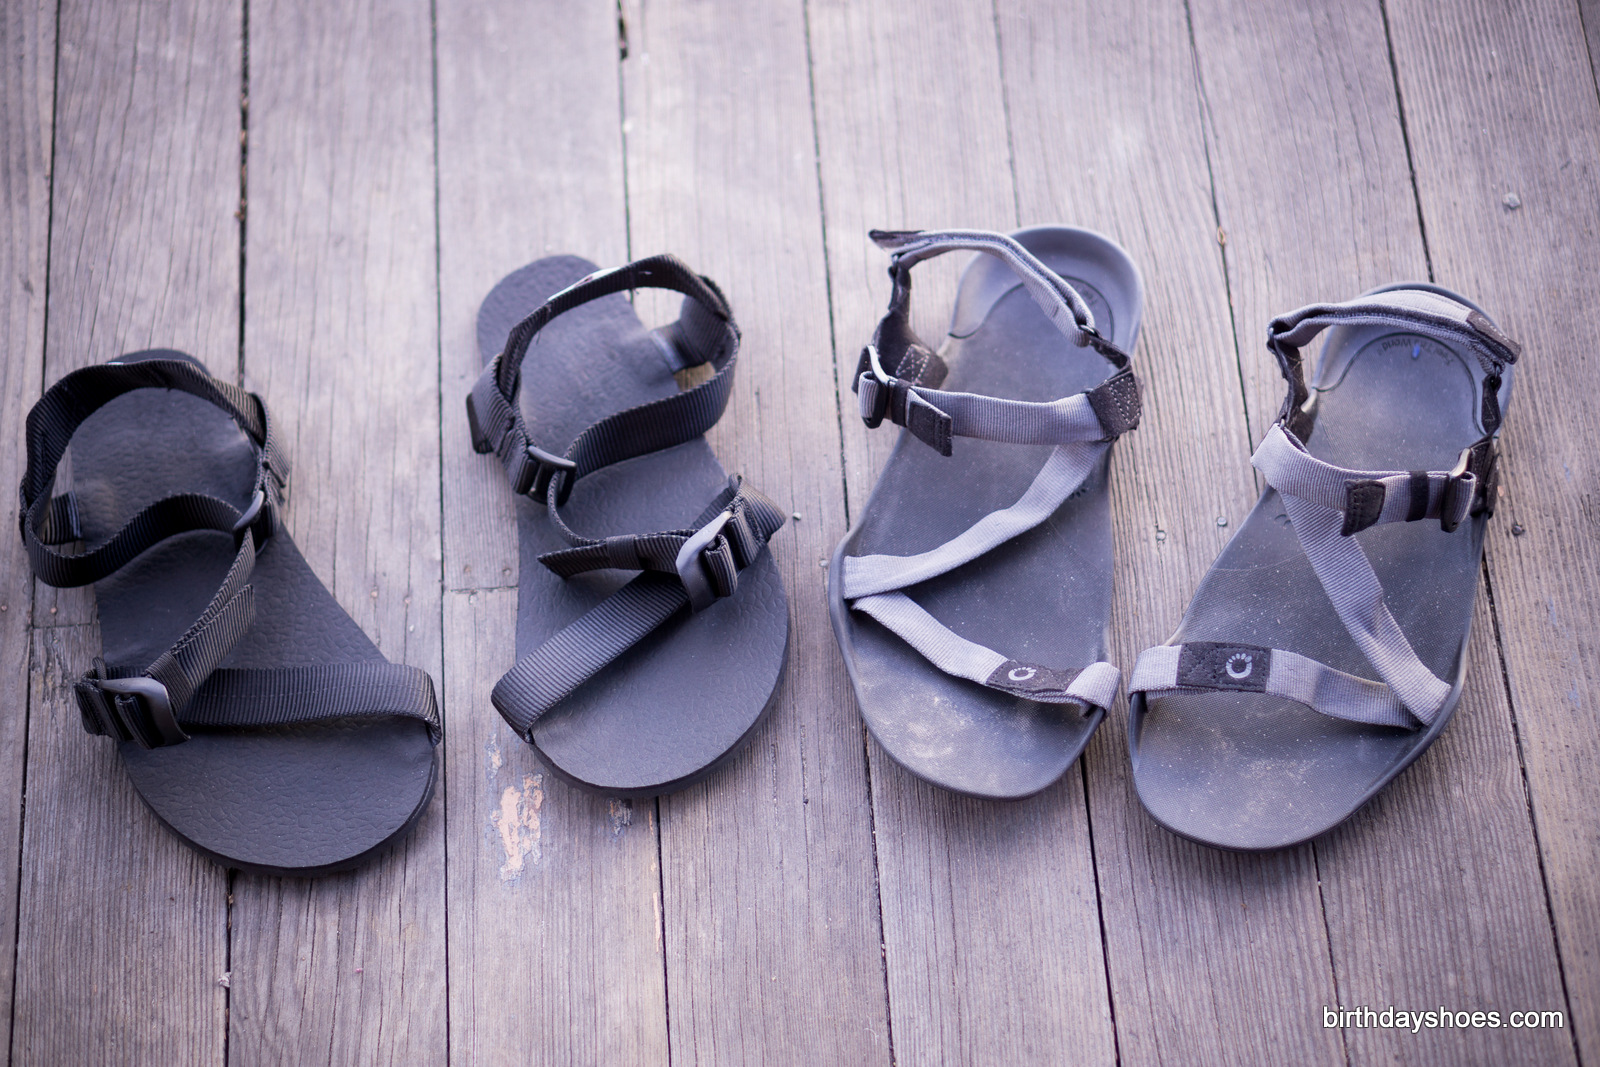 On the left is the Pah Tempe from Unshoes and on the right is the Xero Z-Trek